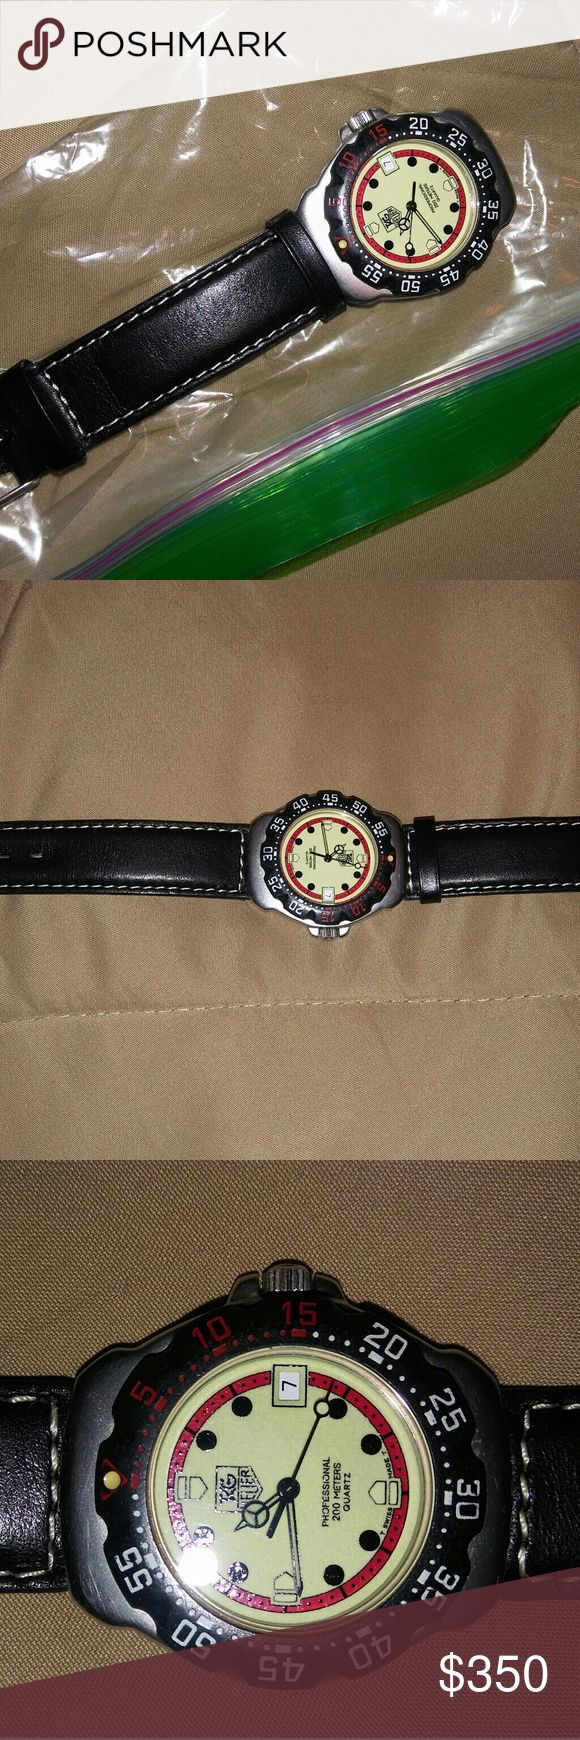 Tag Heuer 90s Unisex Professional 200 Meters Watch 1990 Tag Heuer Formula 1 watch. Mint. New crystal and battery. Genuine Tag components including leather band. This will make a great Christmas gift! These run for $400.00 plus on Ebay so this is an amazing deal! More pictures and videos upon request! Serious Buyers Only Please. Will Ship Same Day Unless Post Office Is Closed For A Holiday! Tag Heuer Accessories Jewelry